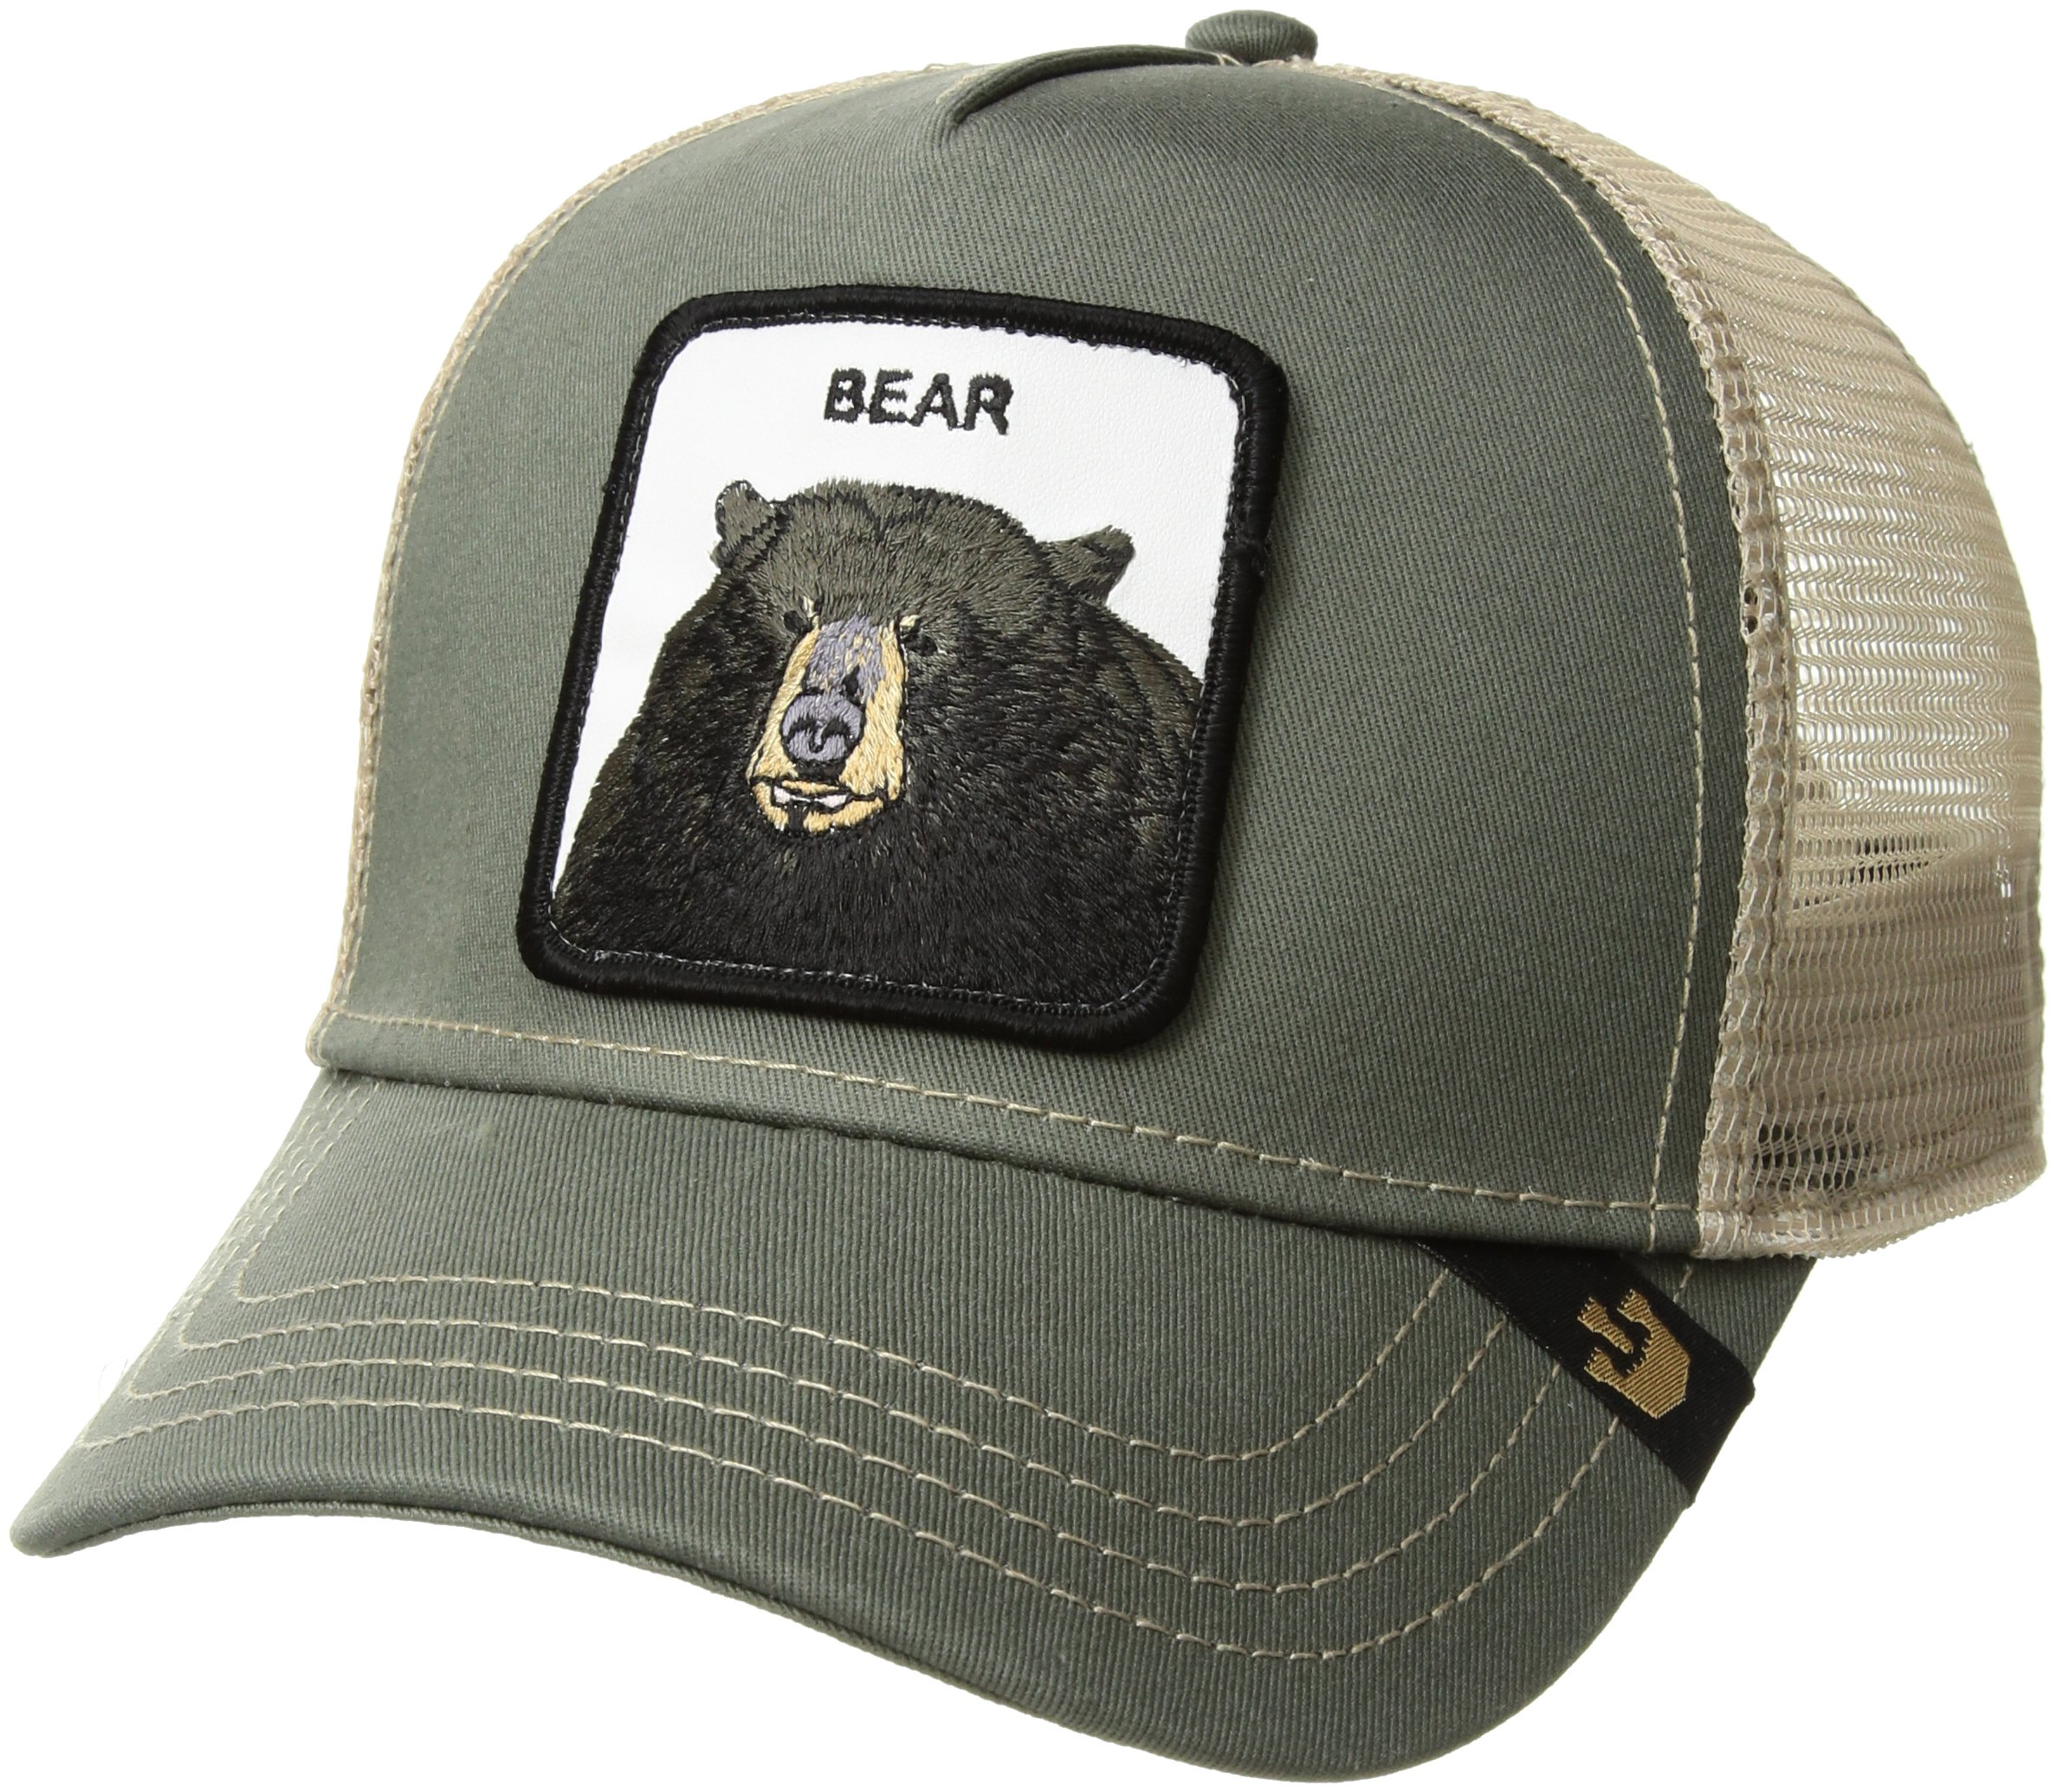 Goorin Bros. Men's Drew Bear Animal Farm Trucker Cap, Olive, One Size